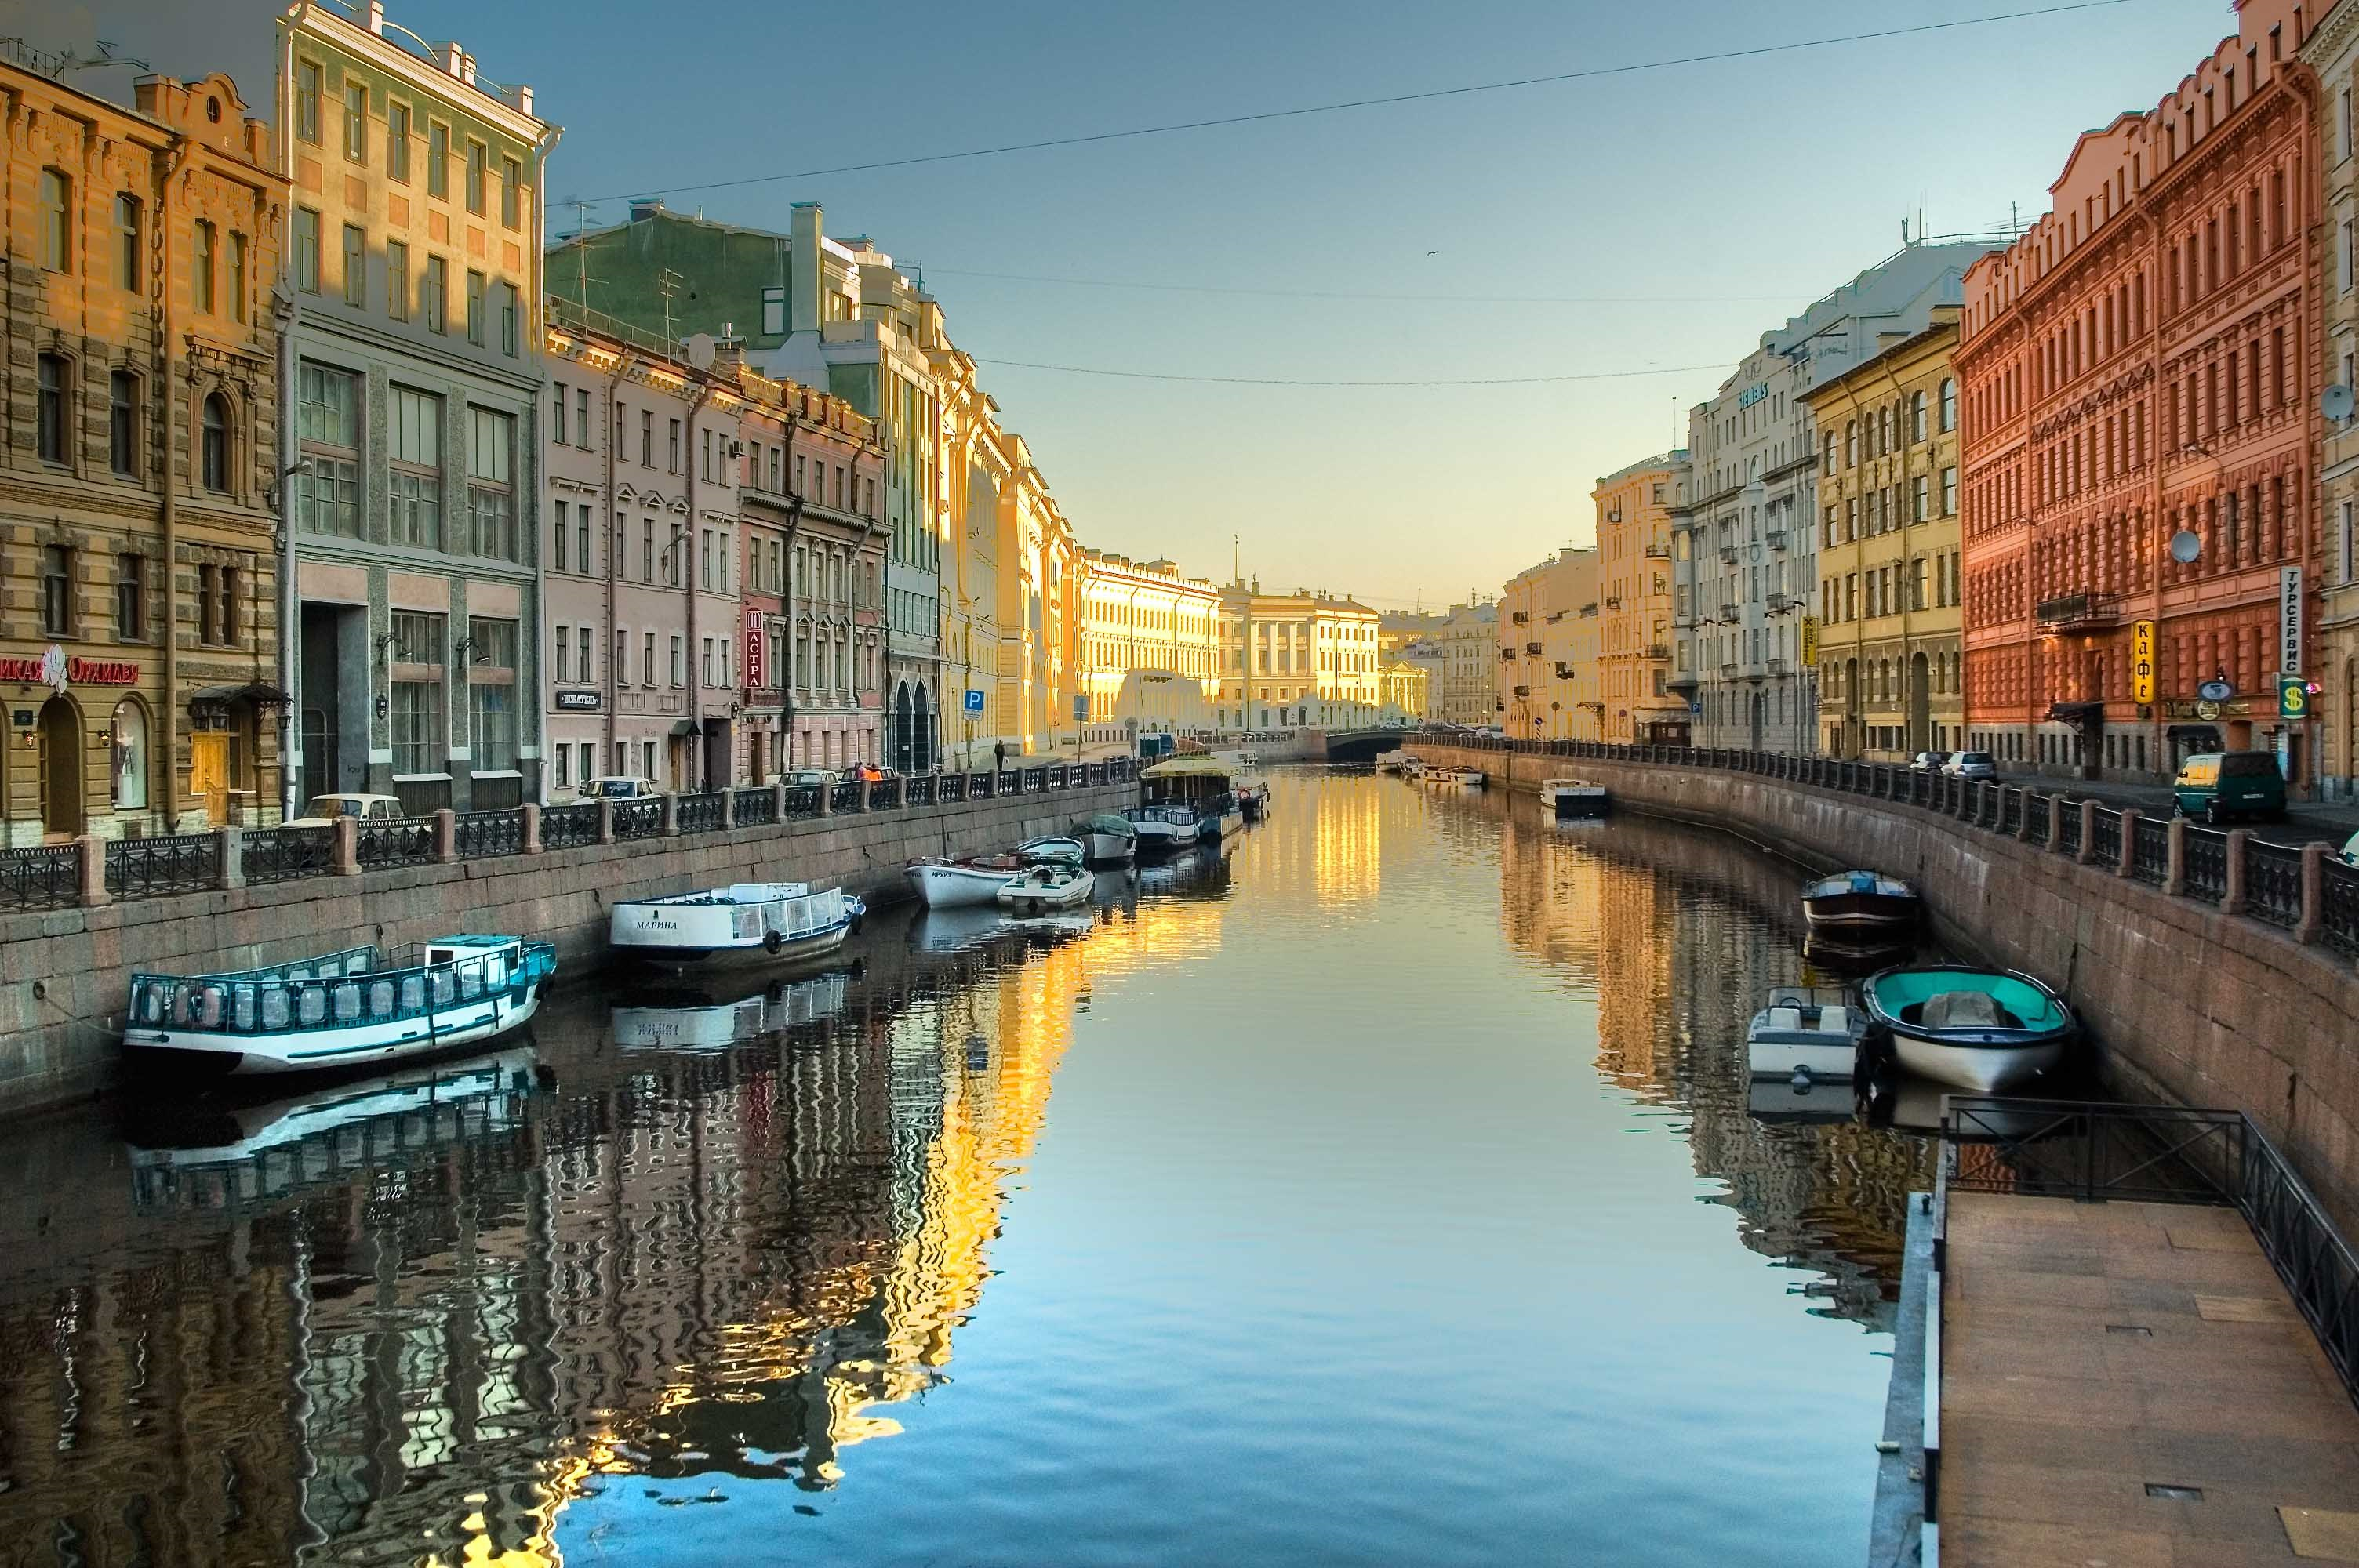 Saint Petersburg, Venice of the North